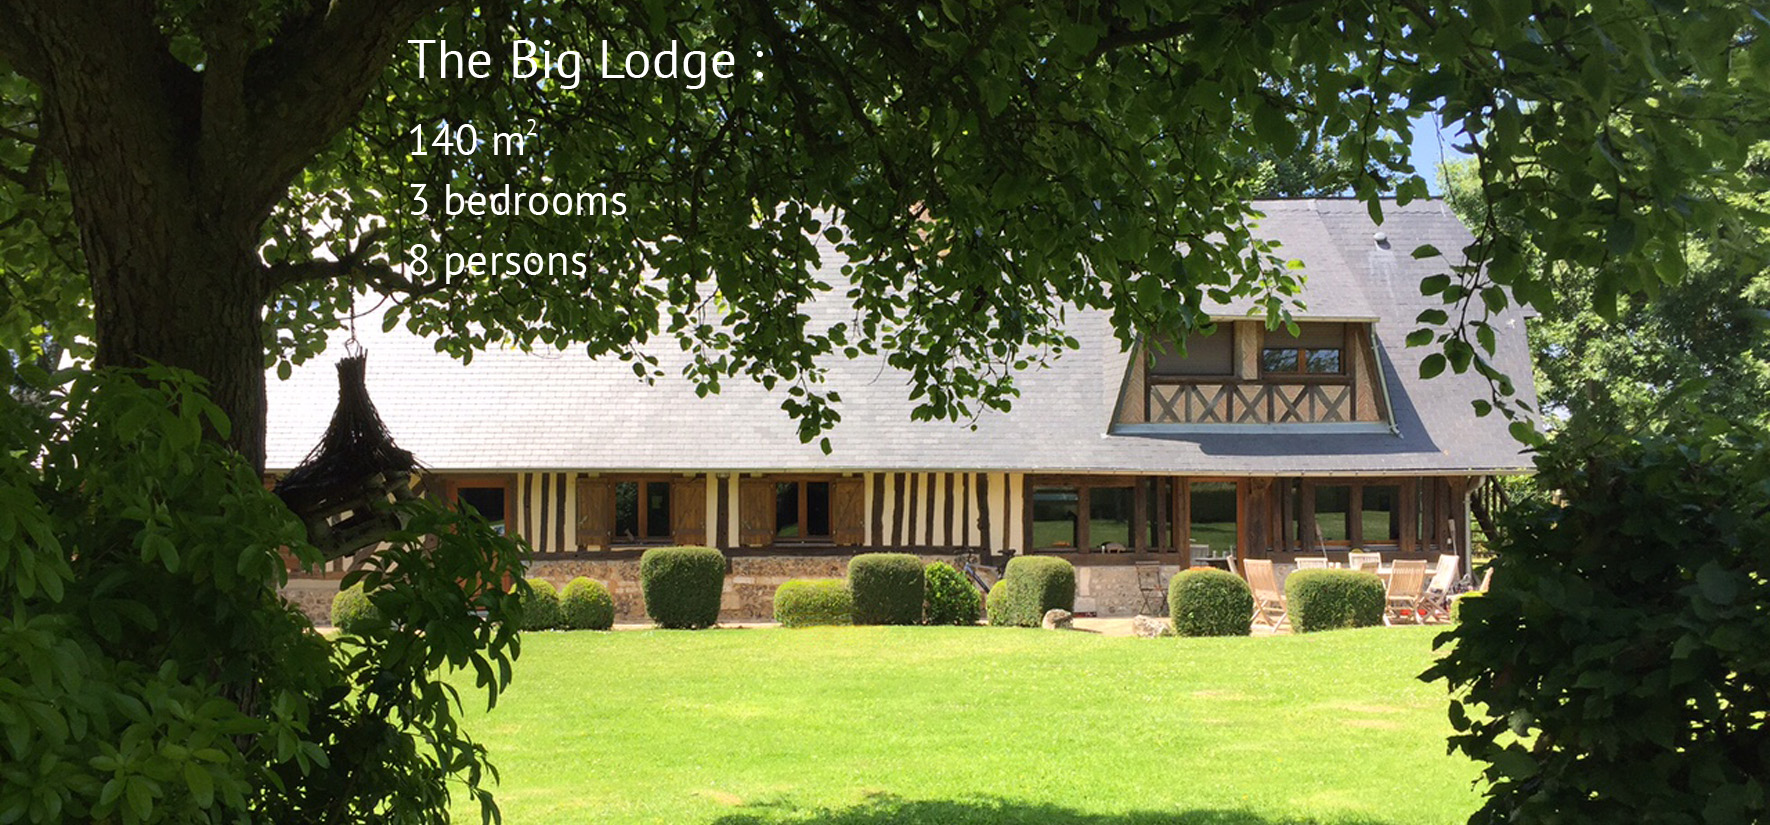 grzand lodge